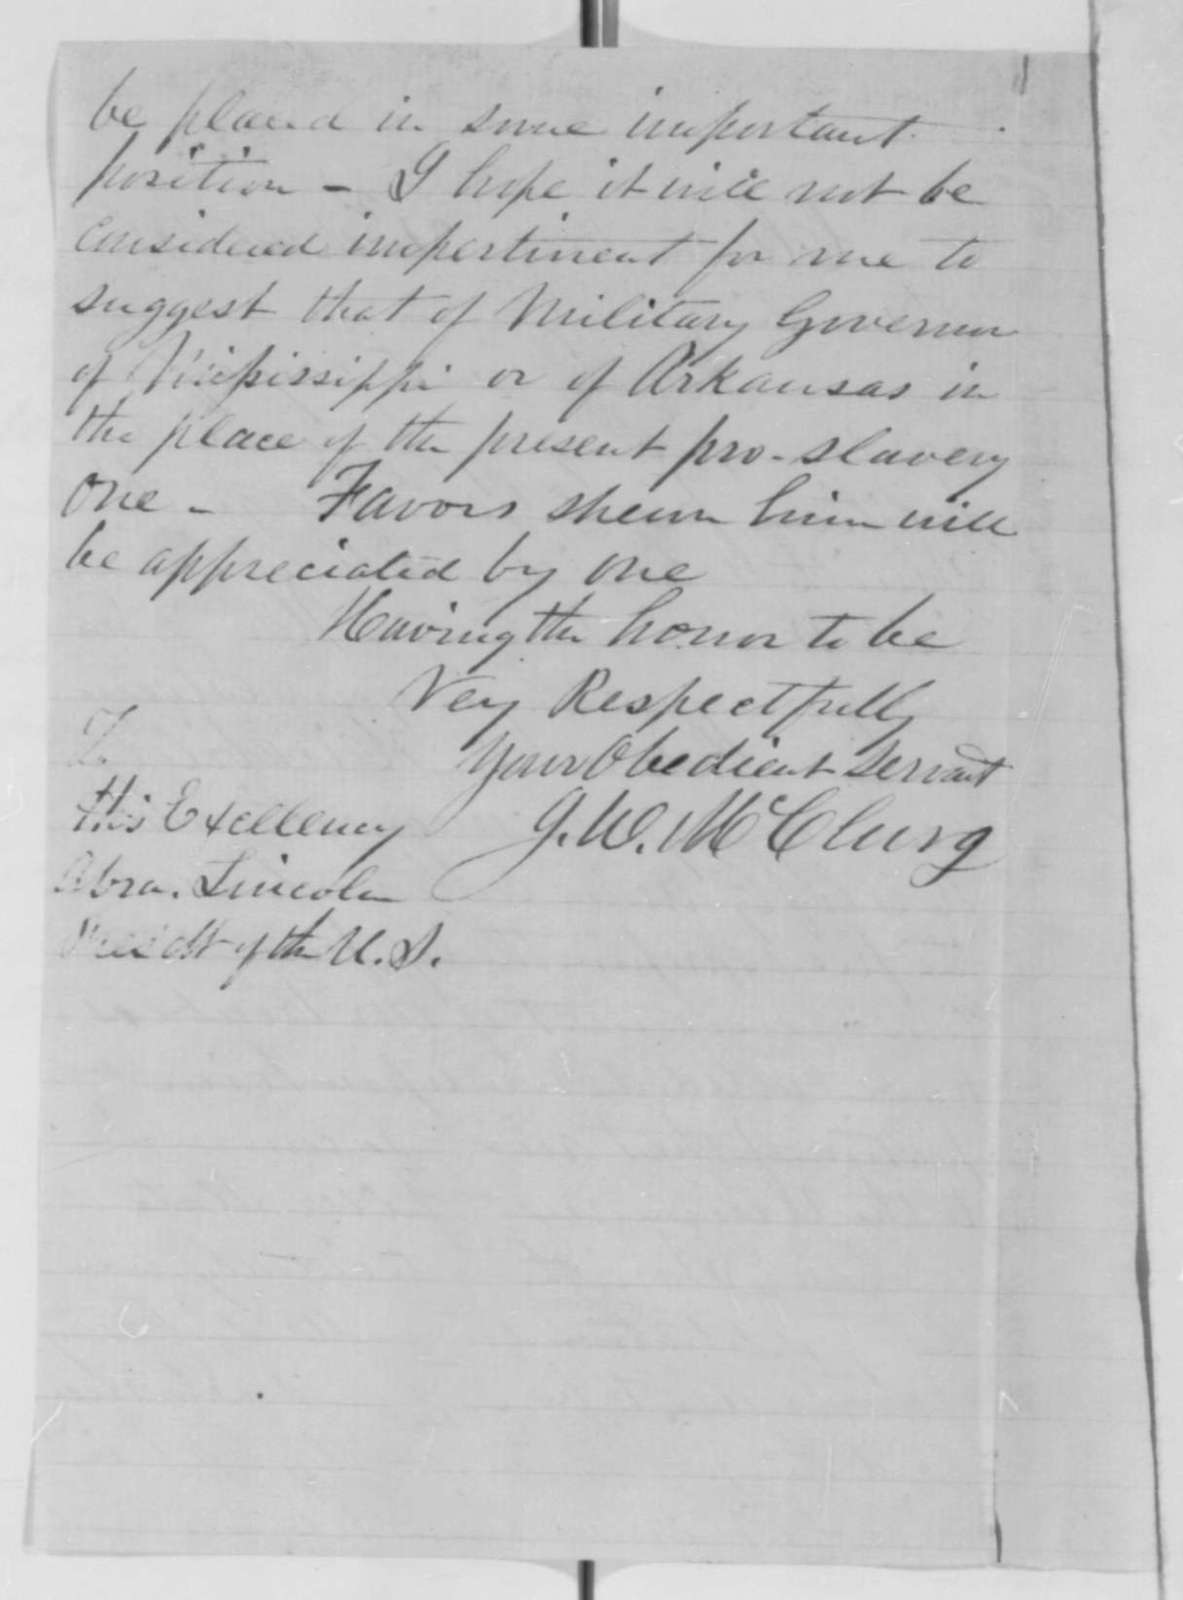 Joseph W. McClurg to Abraham Lincoln, Tuesday, March 31, 1863  (Recommendation for George R. Smith)